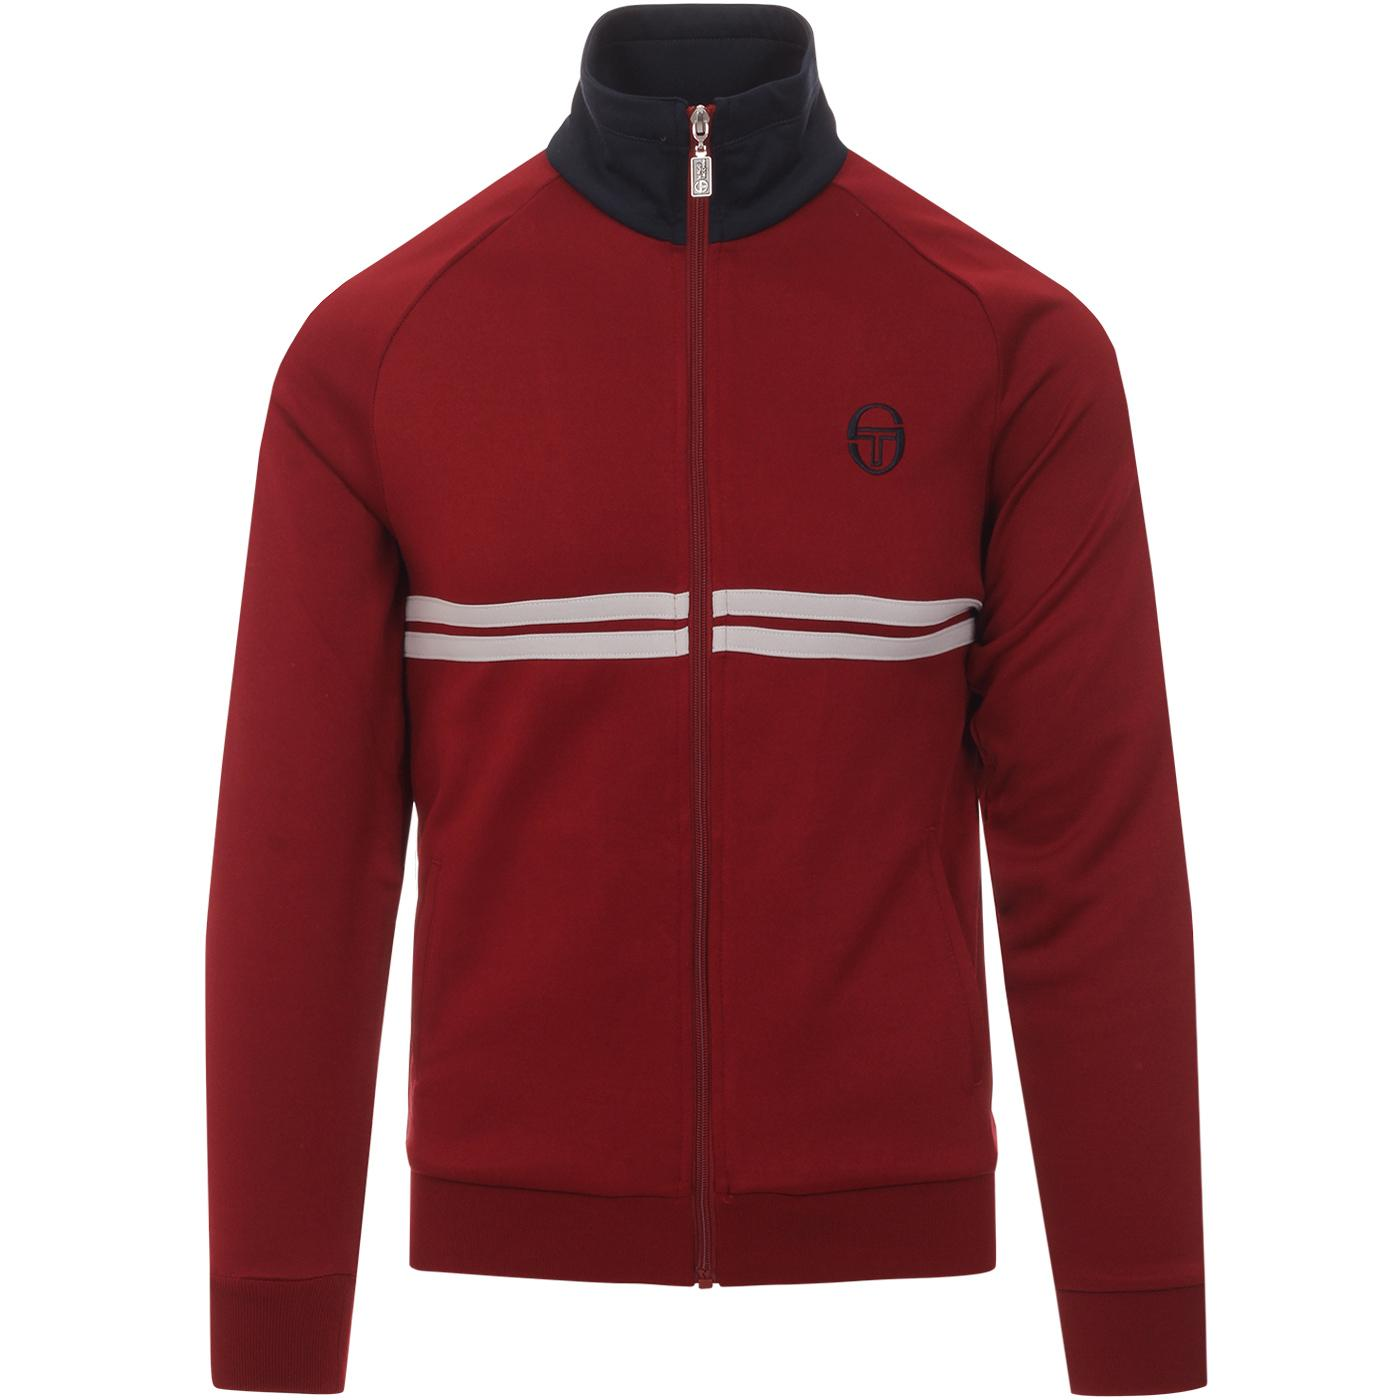 Dallas SERGIO TACCHINI Retro 80s Track Top MN